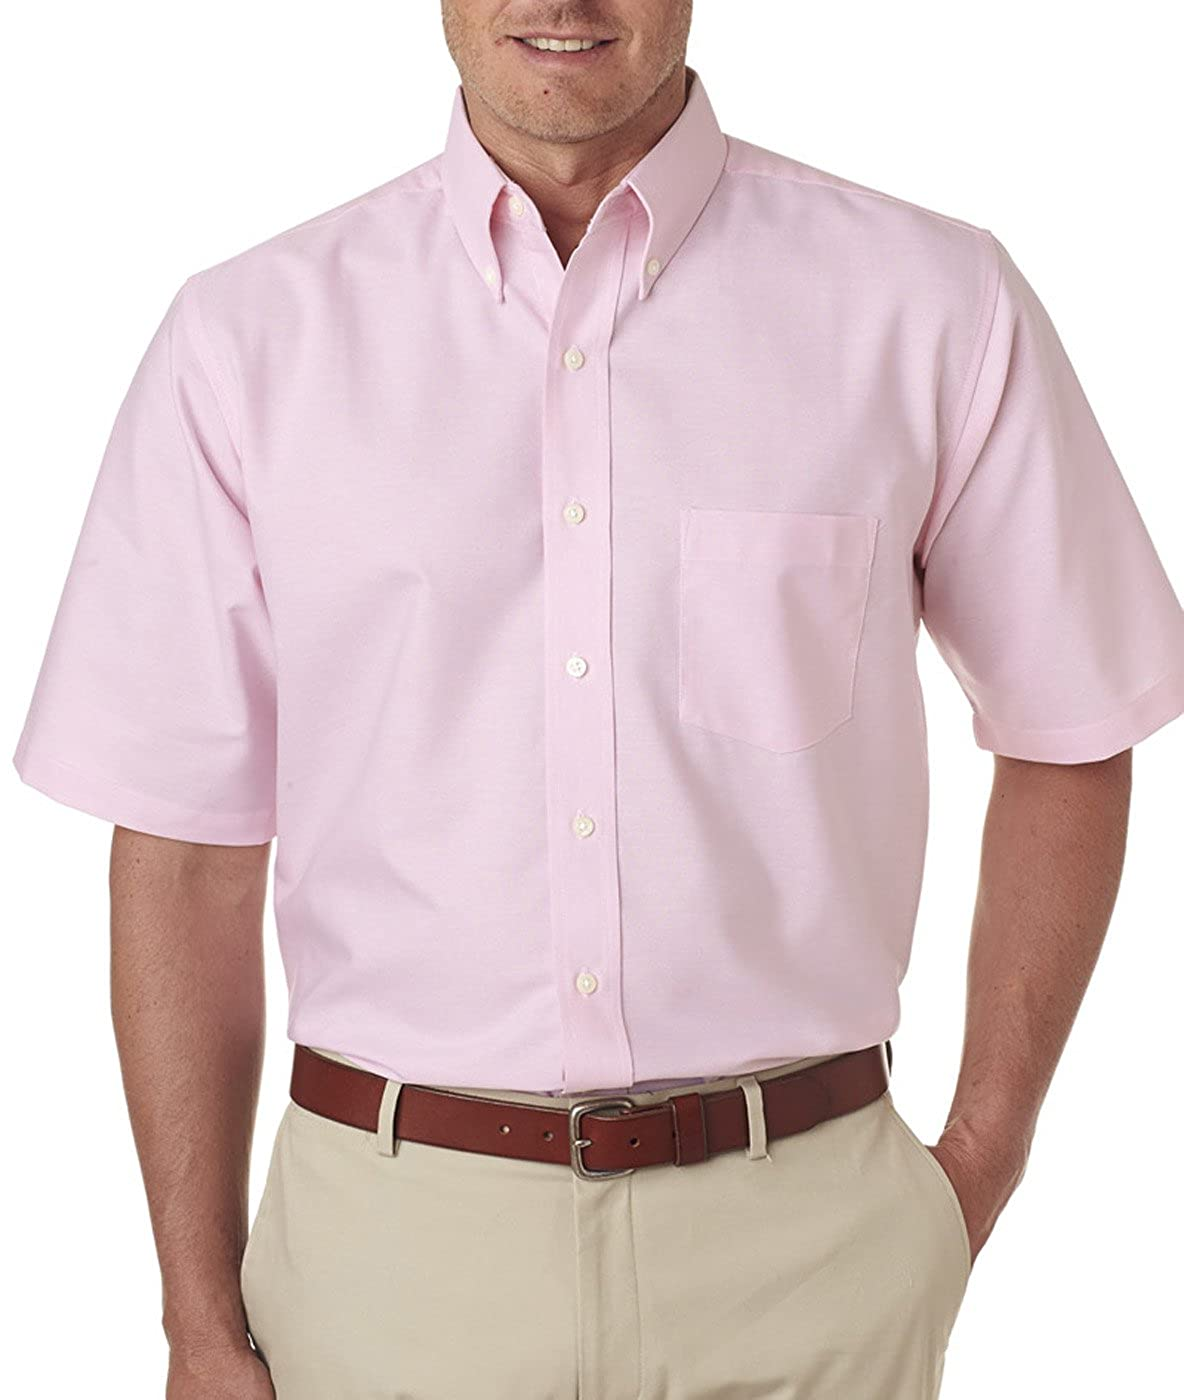 Pink X-Large Ultraclub Men/'s Classic Wrinkle-Free Short-Sleeve Oxford